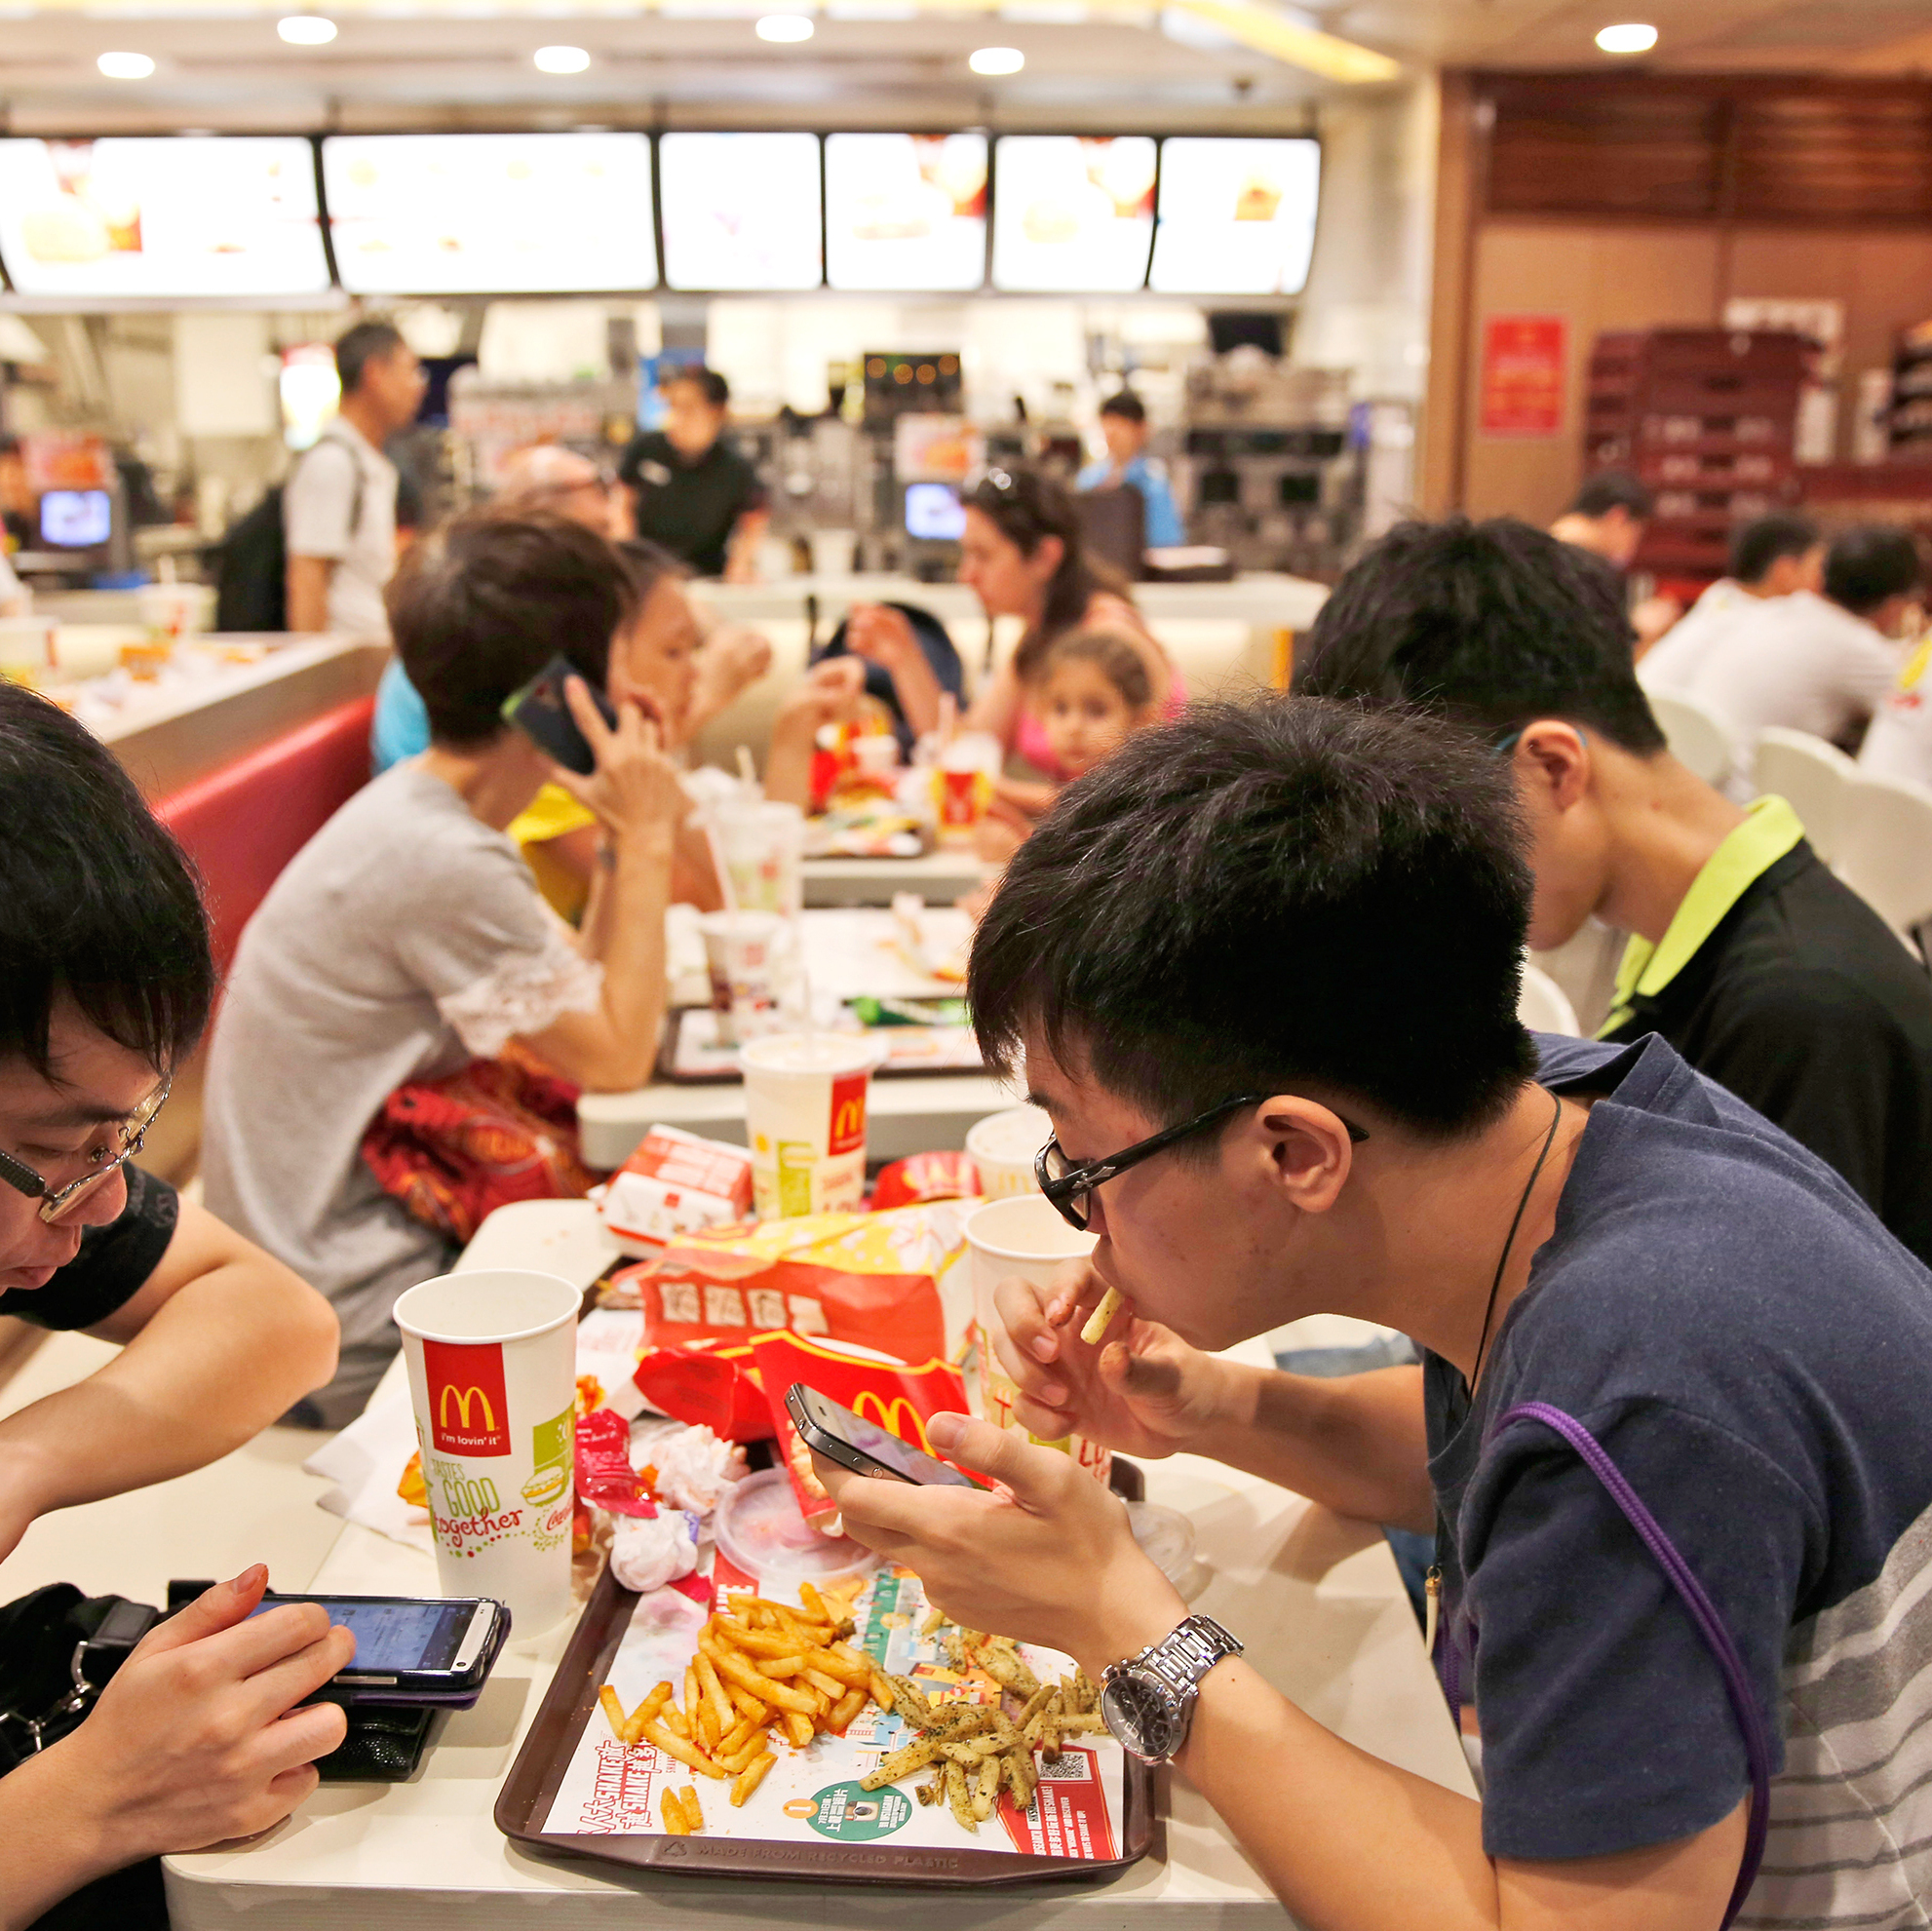 Customers eat at a McDonald's restaurant in Hong Kong Friday, July 25, 2014. McDonald's restaurants in Hong Kong have taken chicken nuggets and chicken filet burgers off the menu after a U.S.-owned supplier in mainland China was accused of selling expired meat.